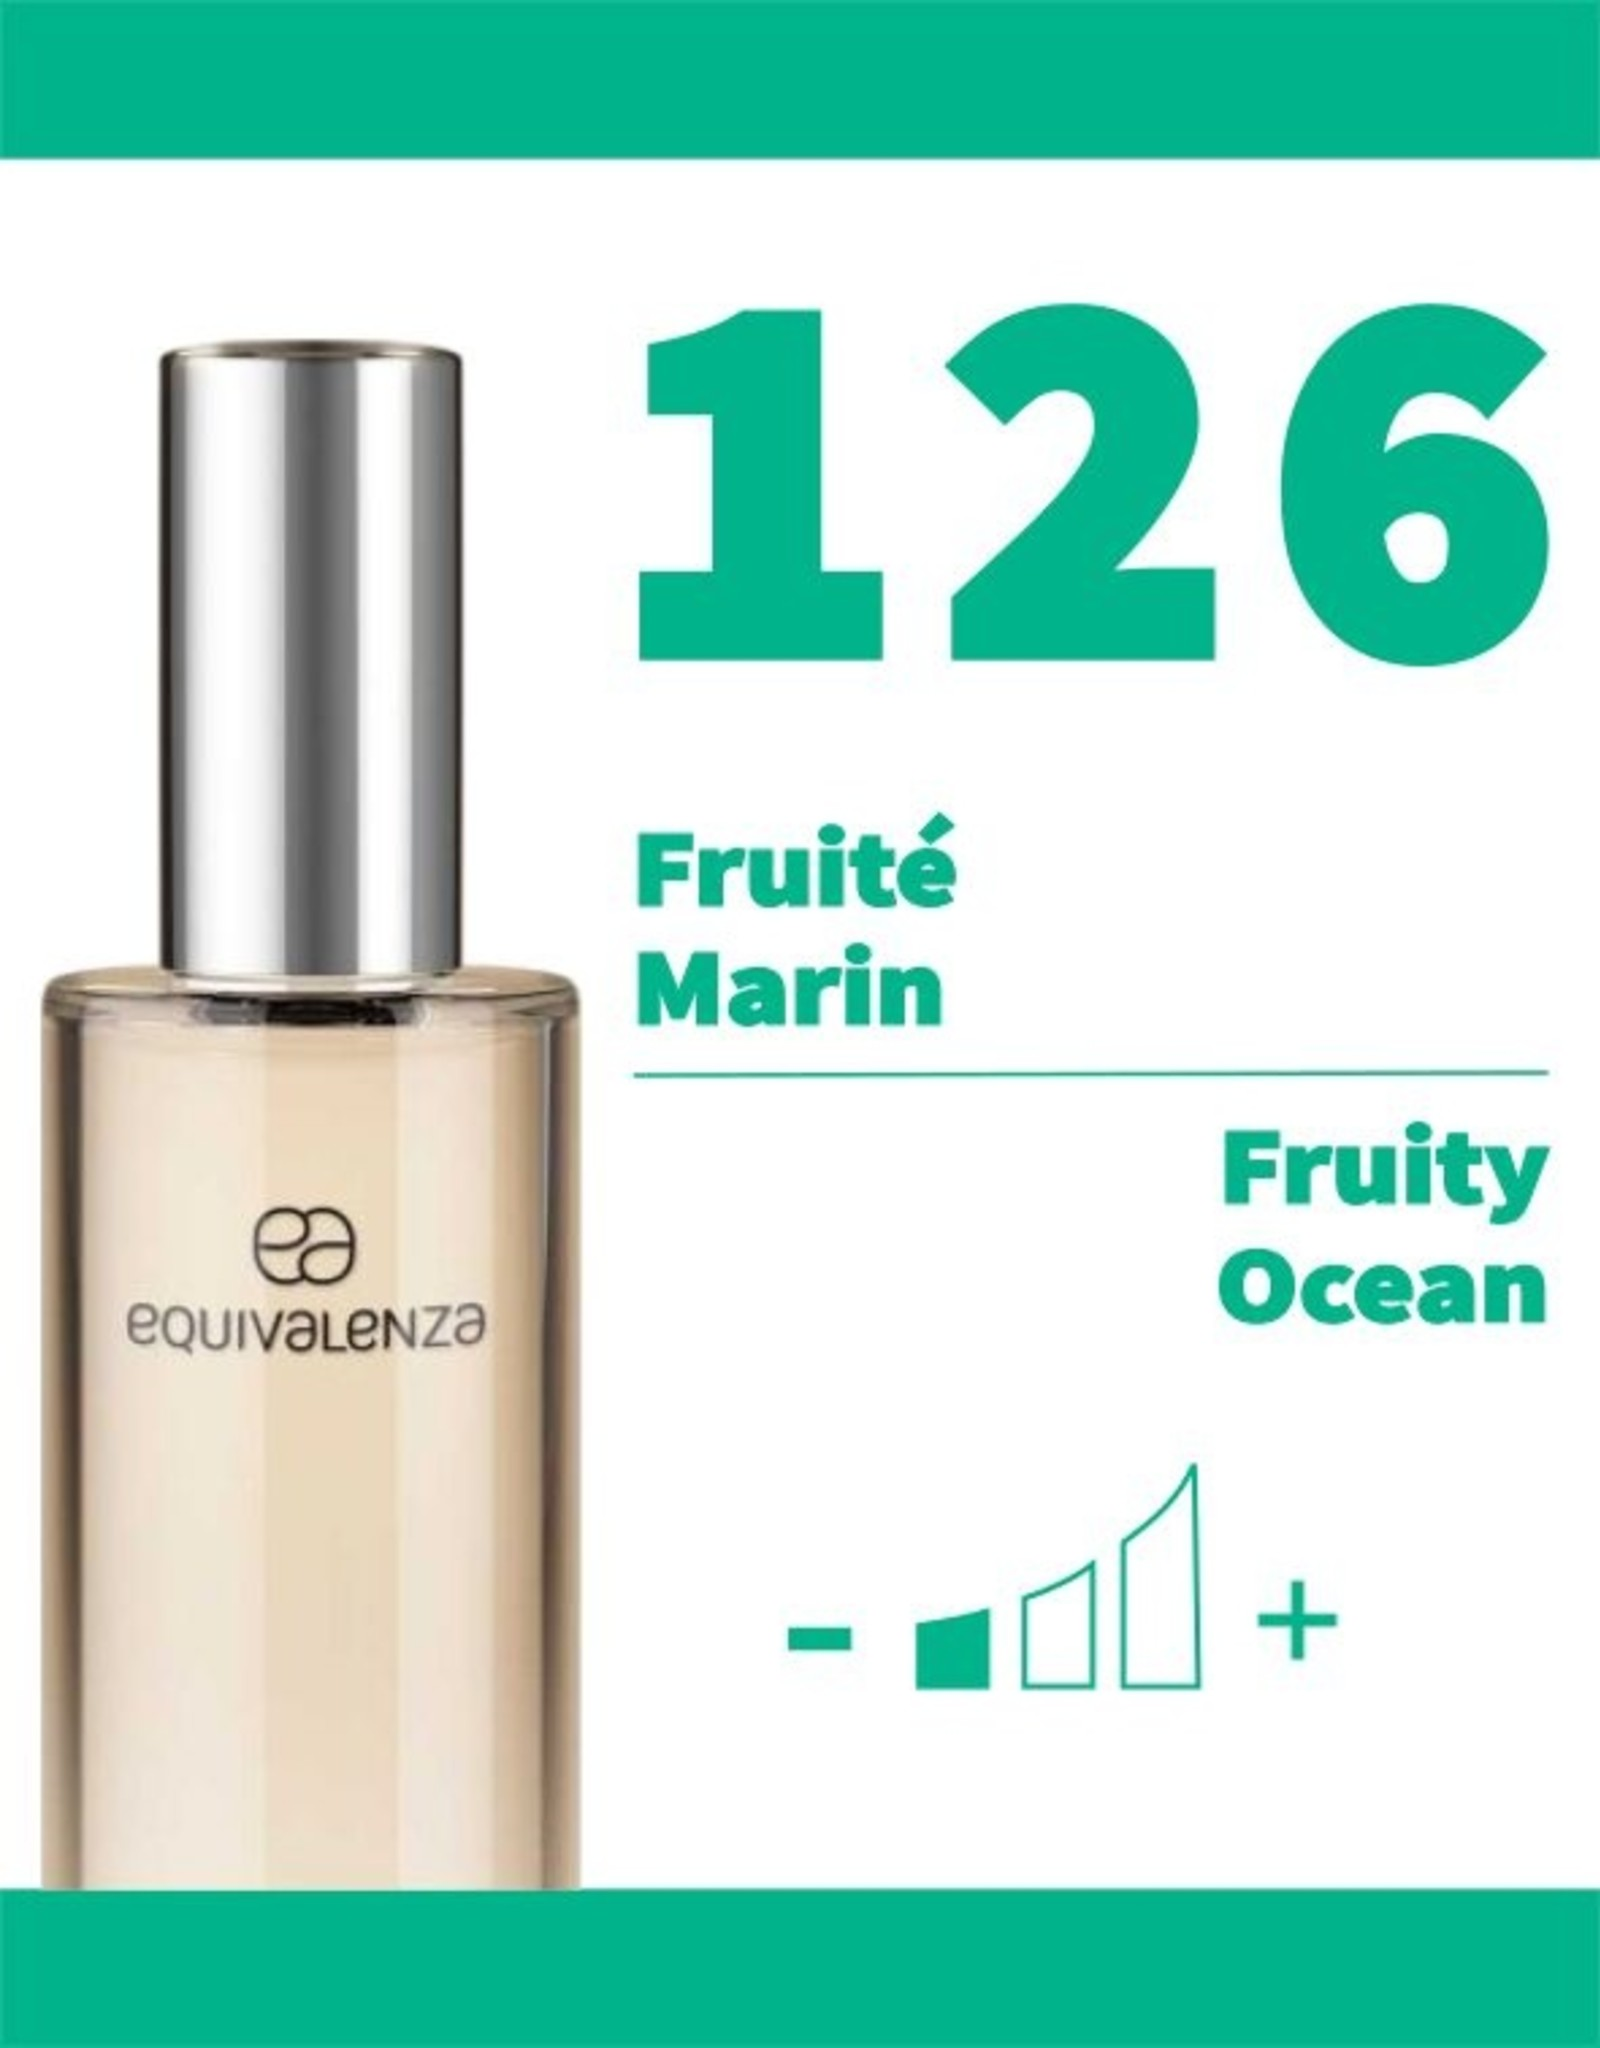 Equivalenza Fruity Ocean 126